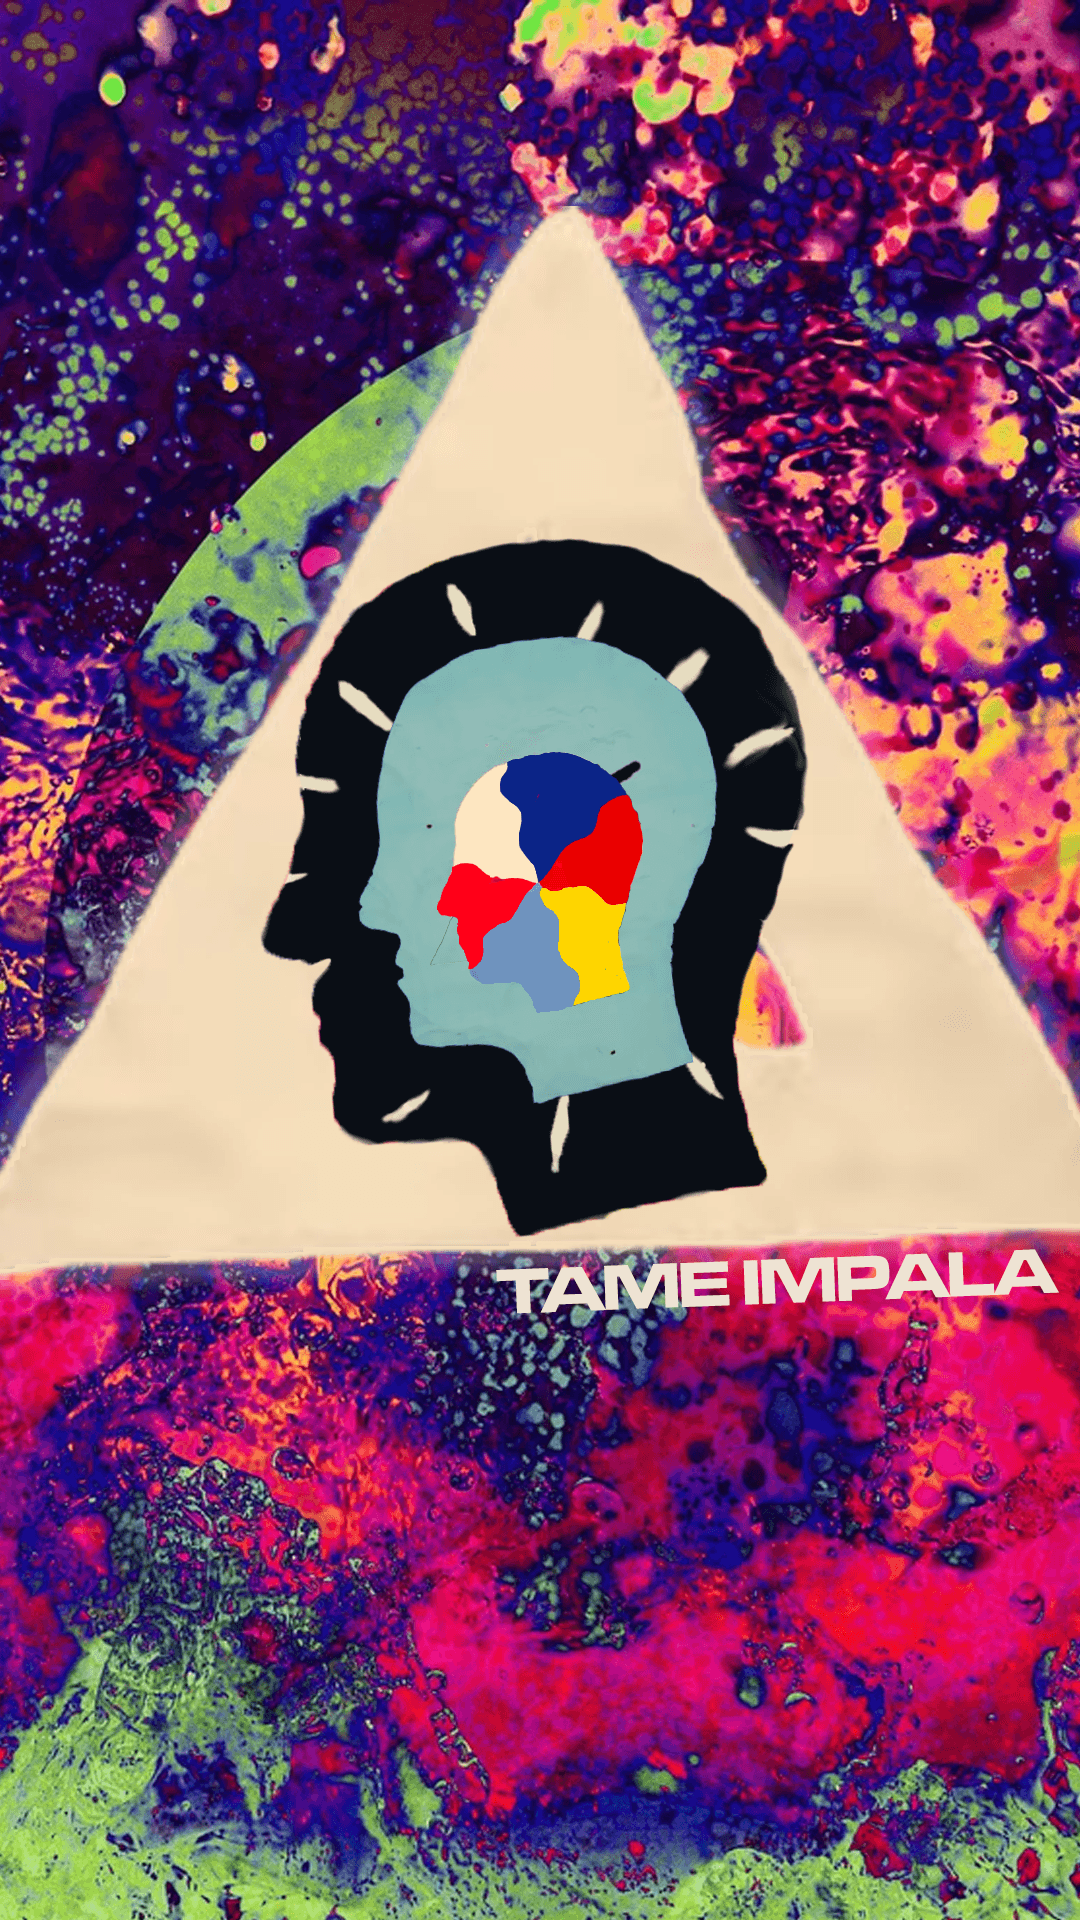 1080x1920 Another Tame Impala wallpaper that I made. This time for mobile ...